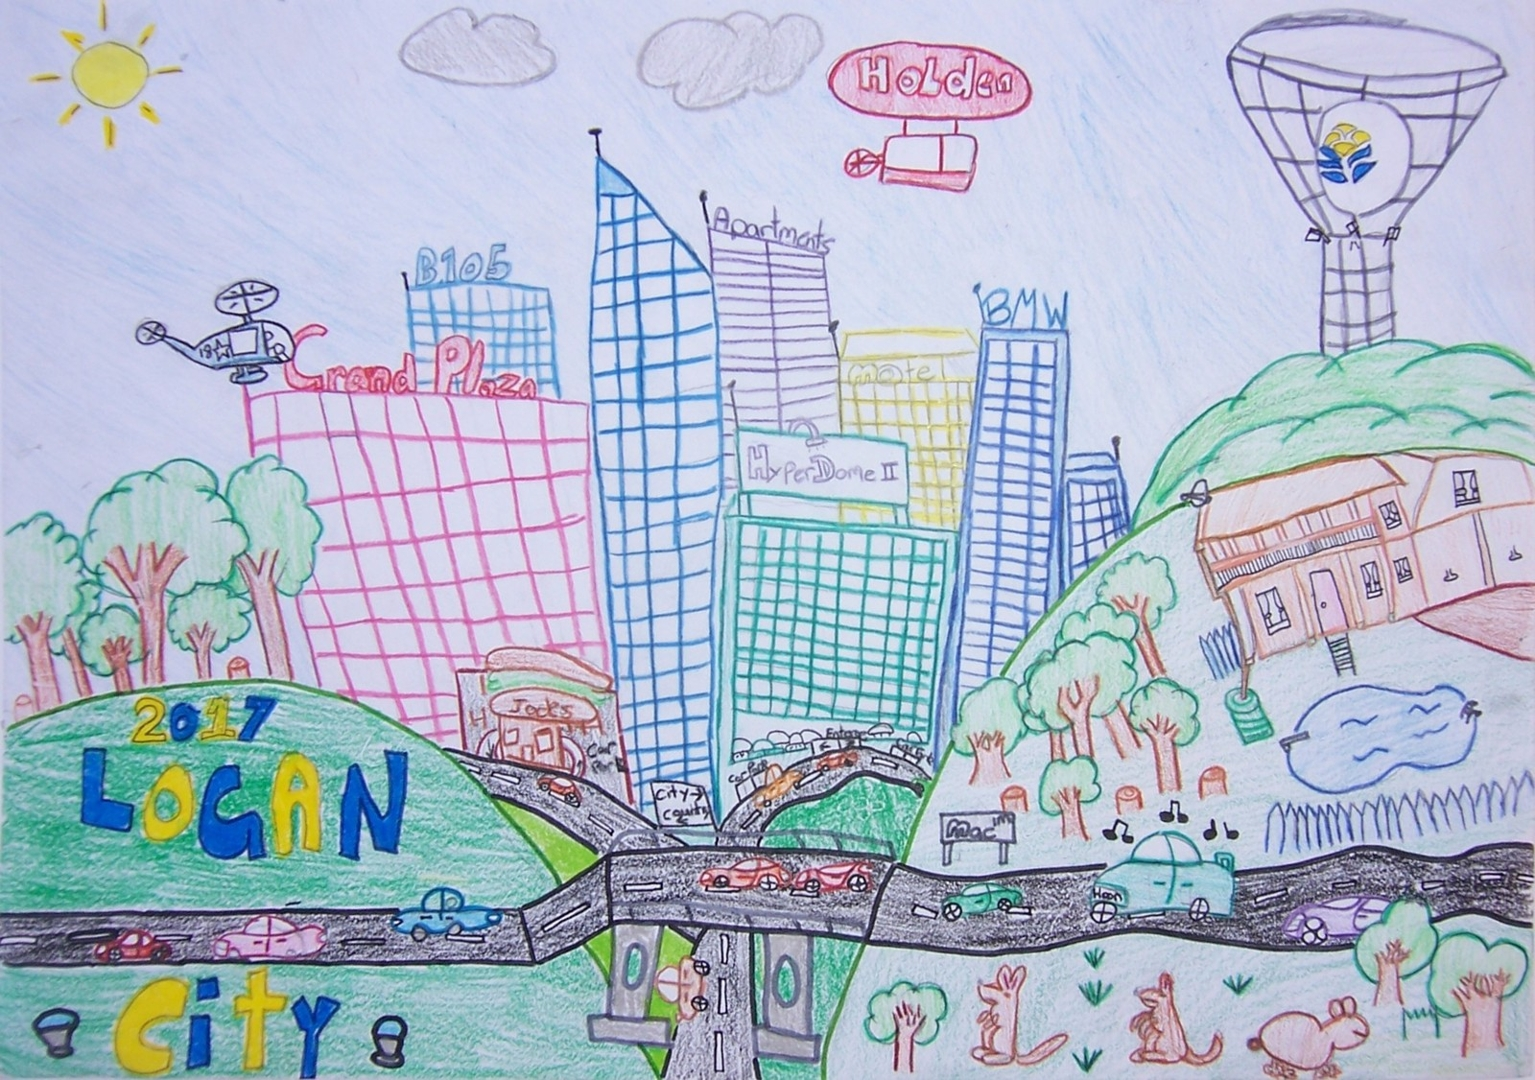 Our City logan in Ten Years image